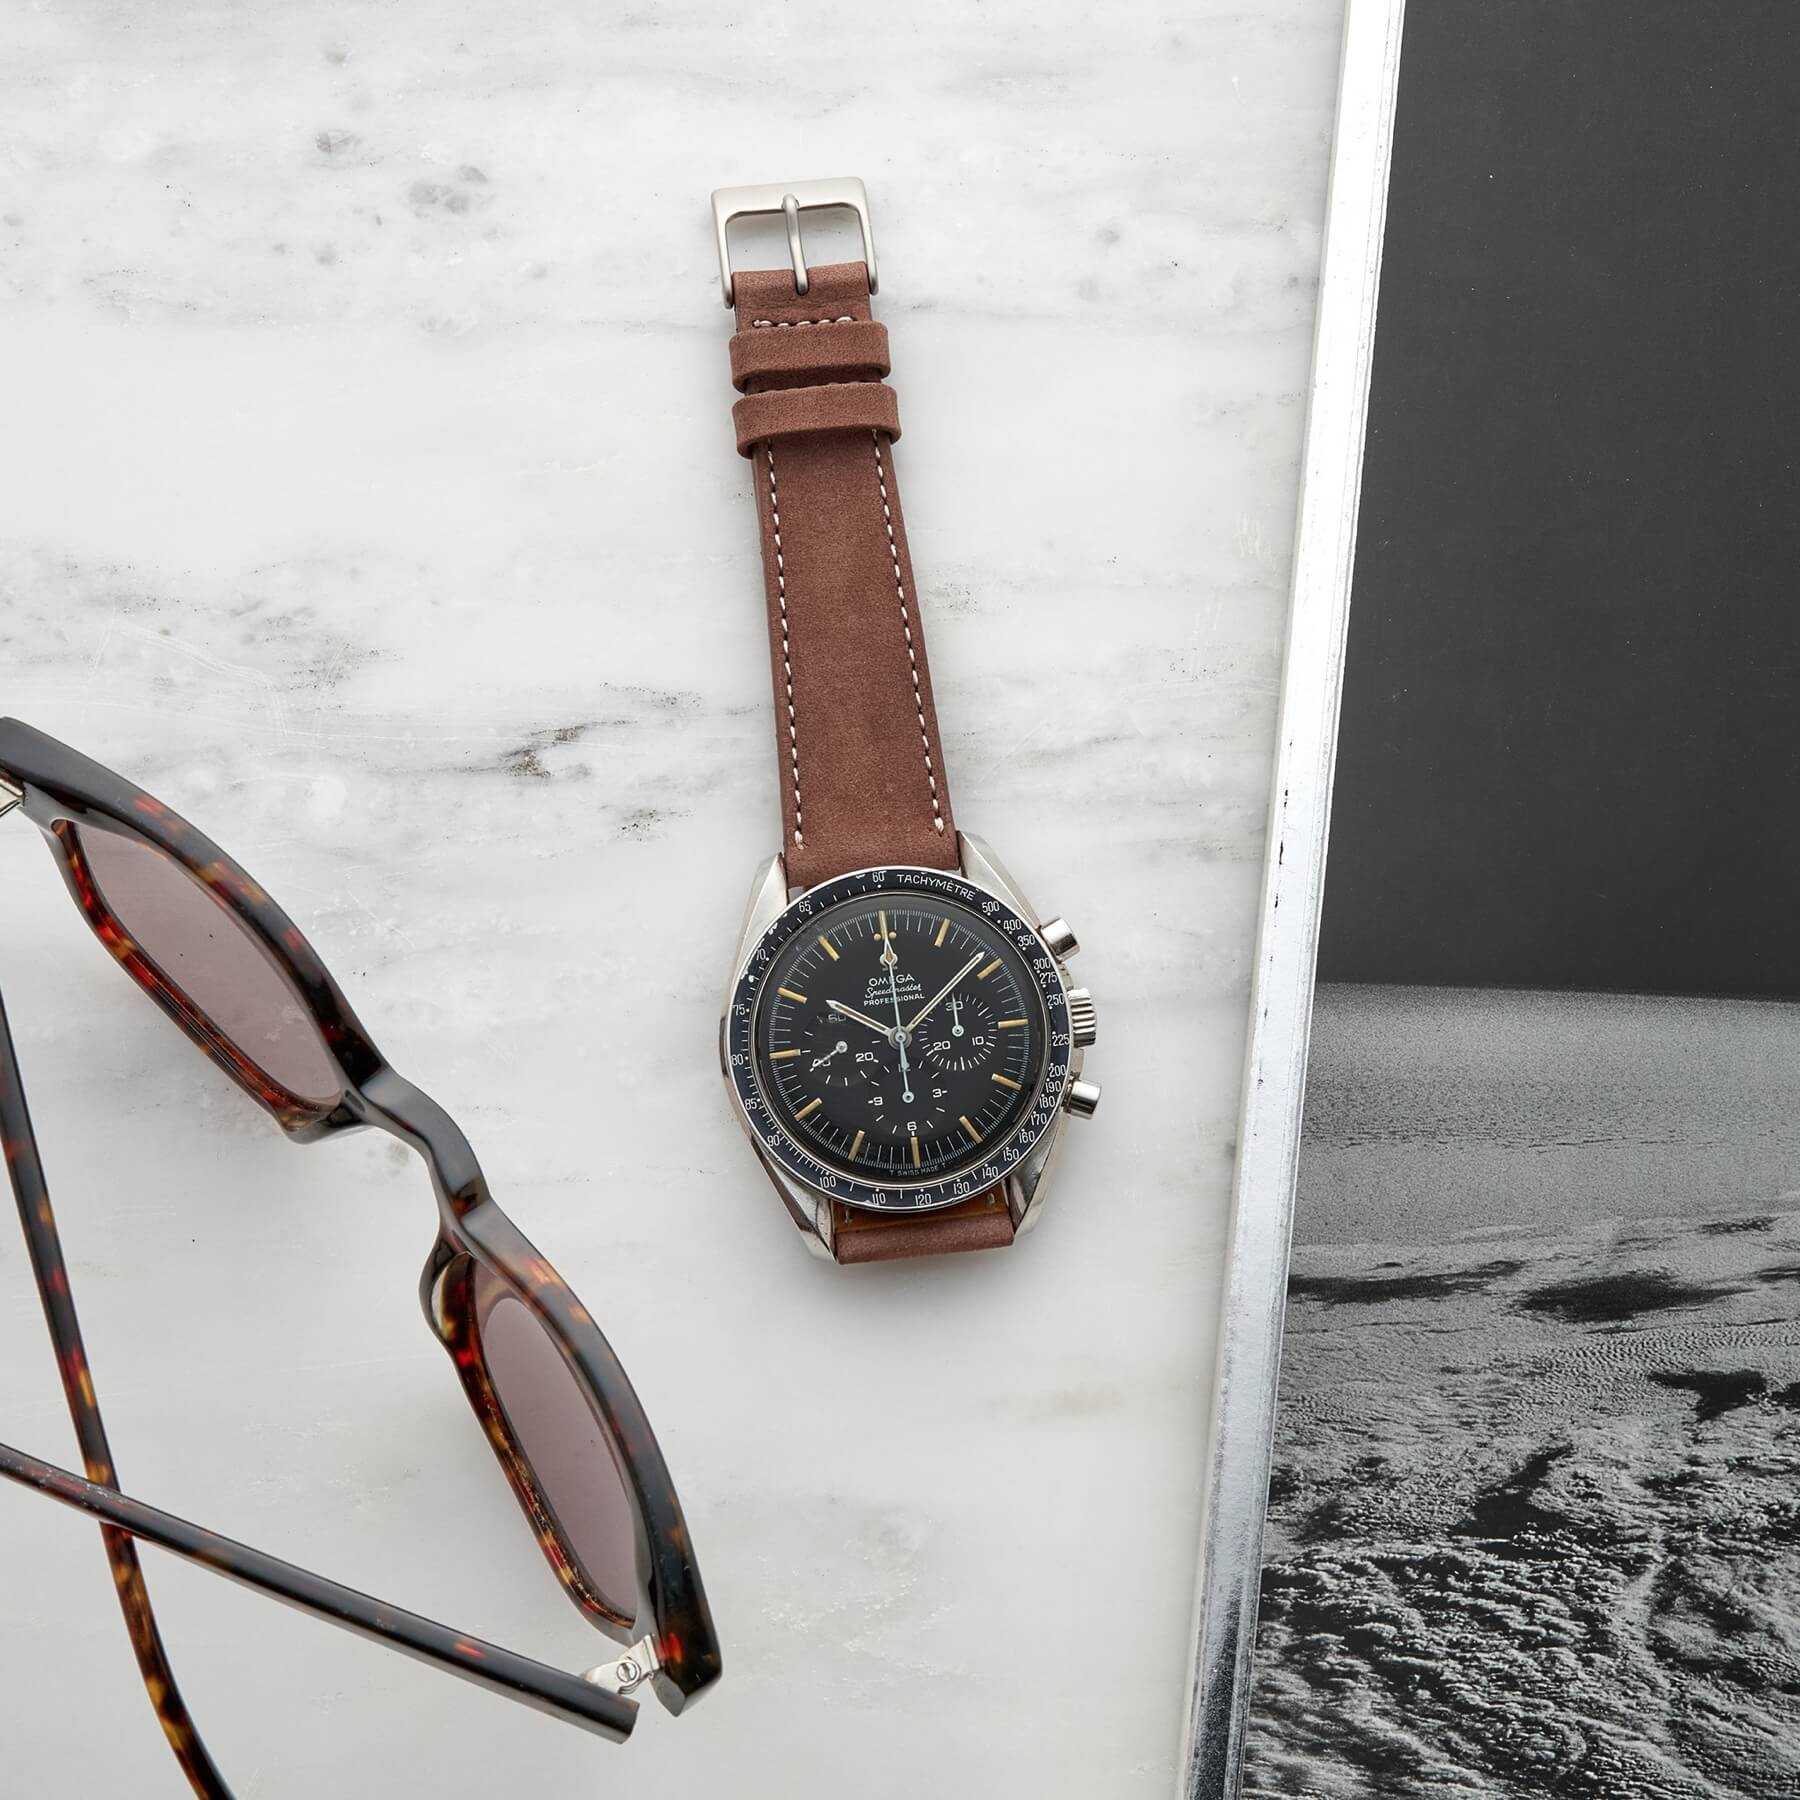 Quality affordable men's timepieces at Hodinkee